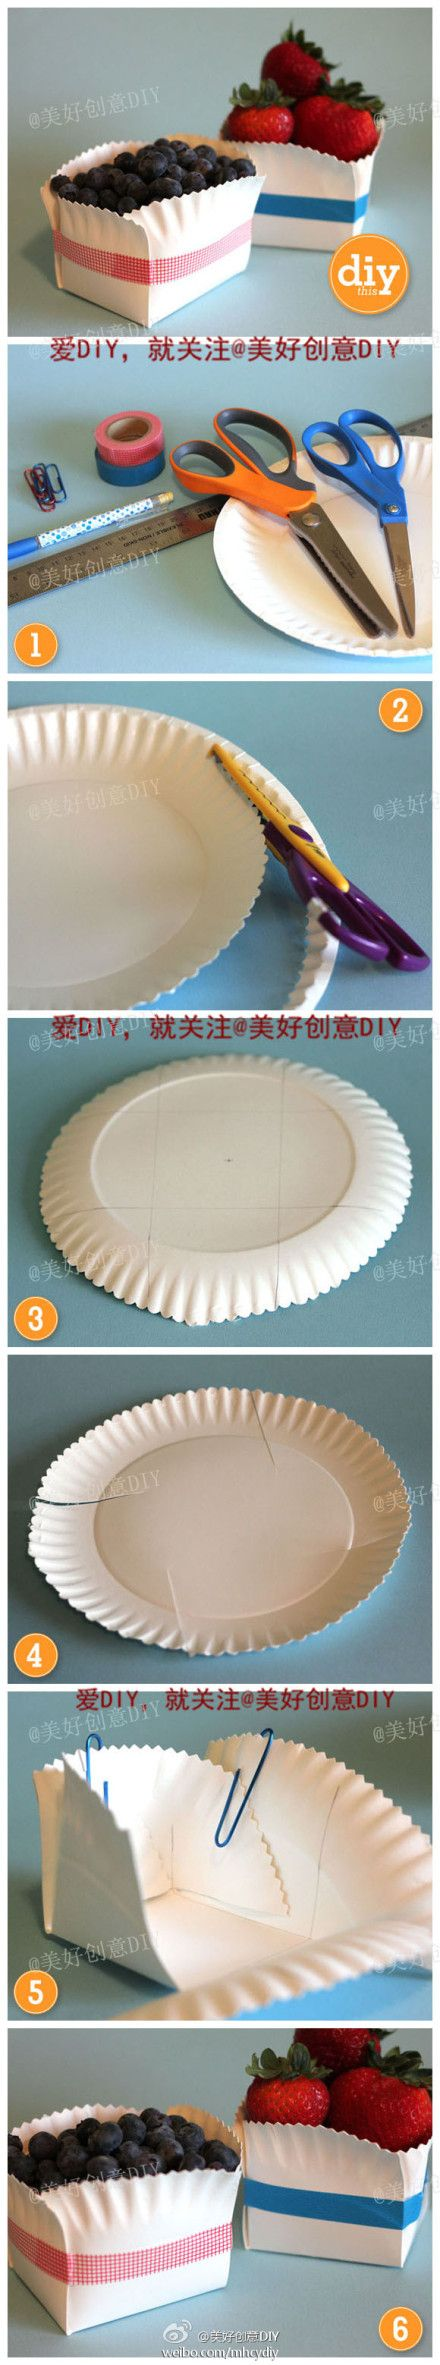 diy paper boxes from paper plate.  use with candy, flowers, fruit, cookies, etc..: Paper Plates Baskets, Little Boxes, Idea, Diy Crafts, Paper Plates Boxes, Paper Boxes, Washi Tape, Gifts Boxes, Cakes Ball